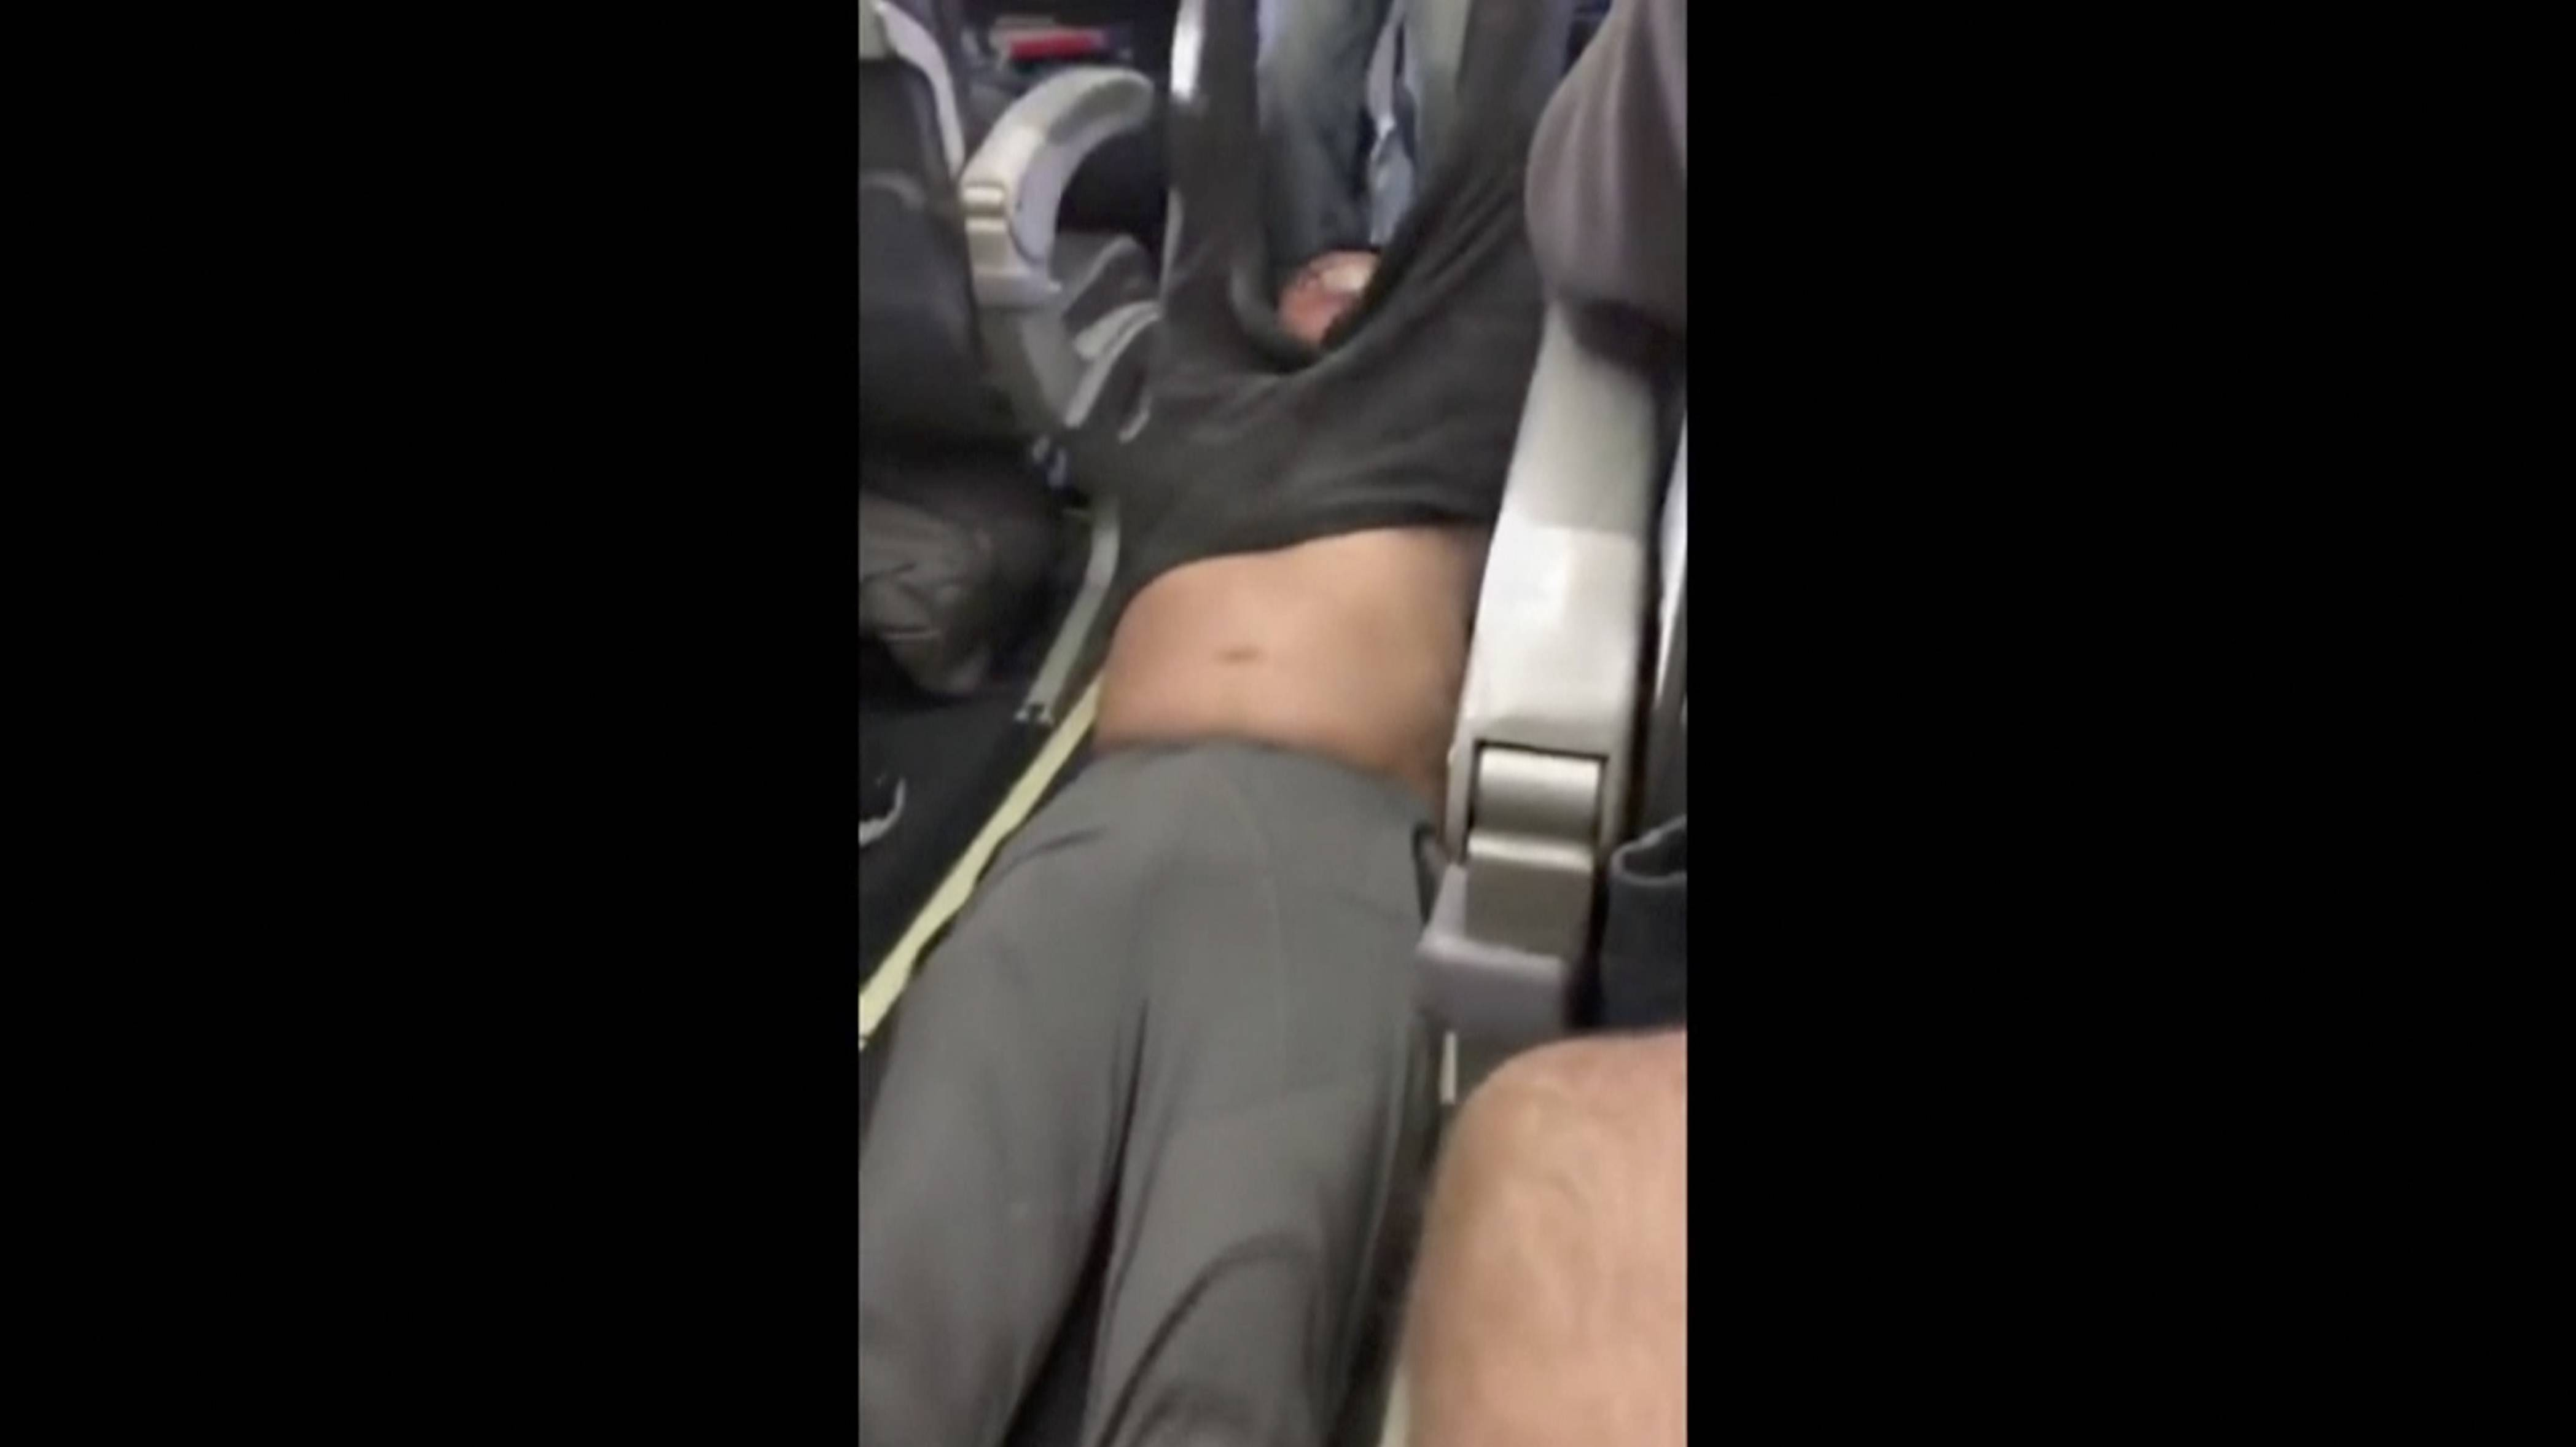 Passenger dragged off United Airlines flight settles with carrier